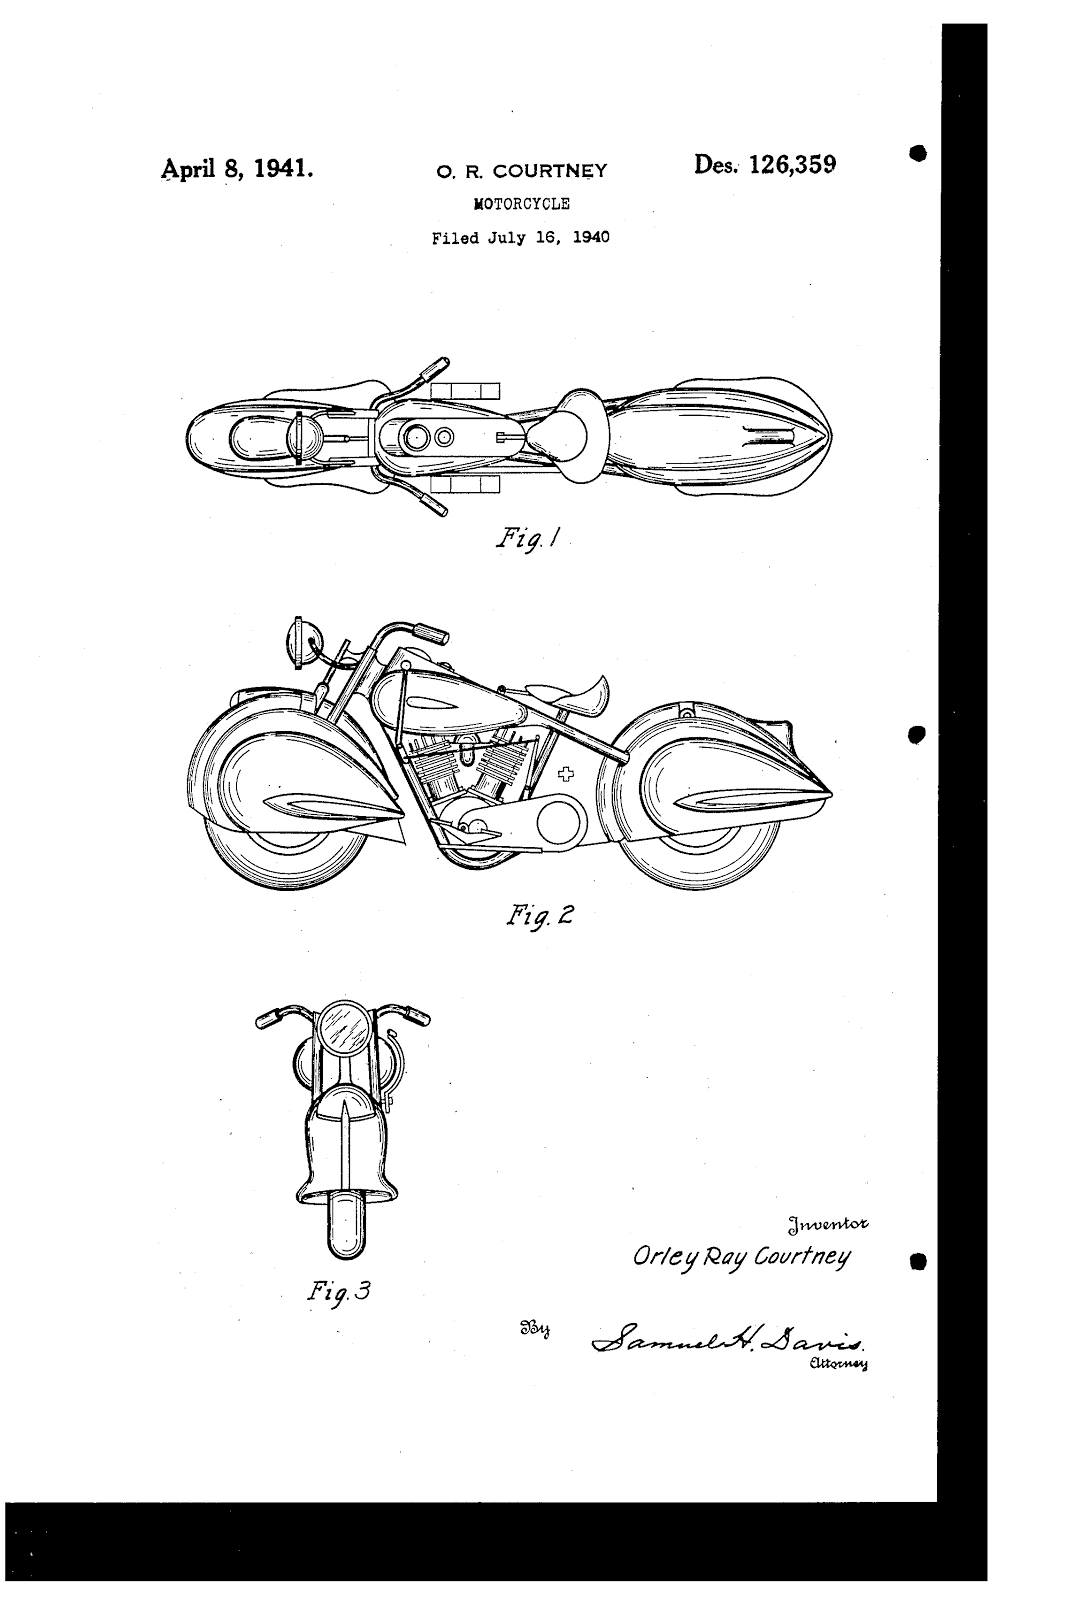 Courtney Aero Squadron motorcycle patent